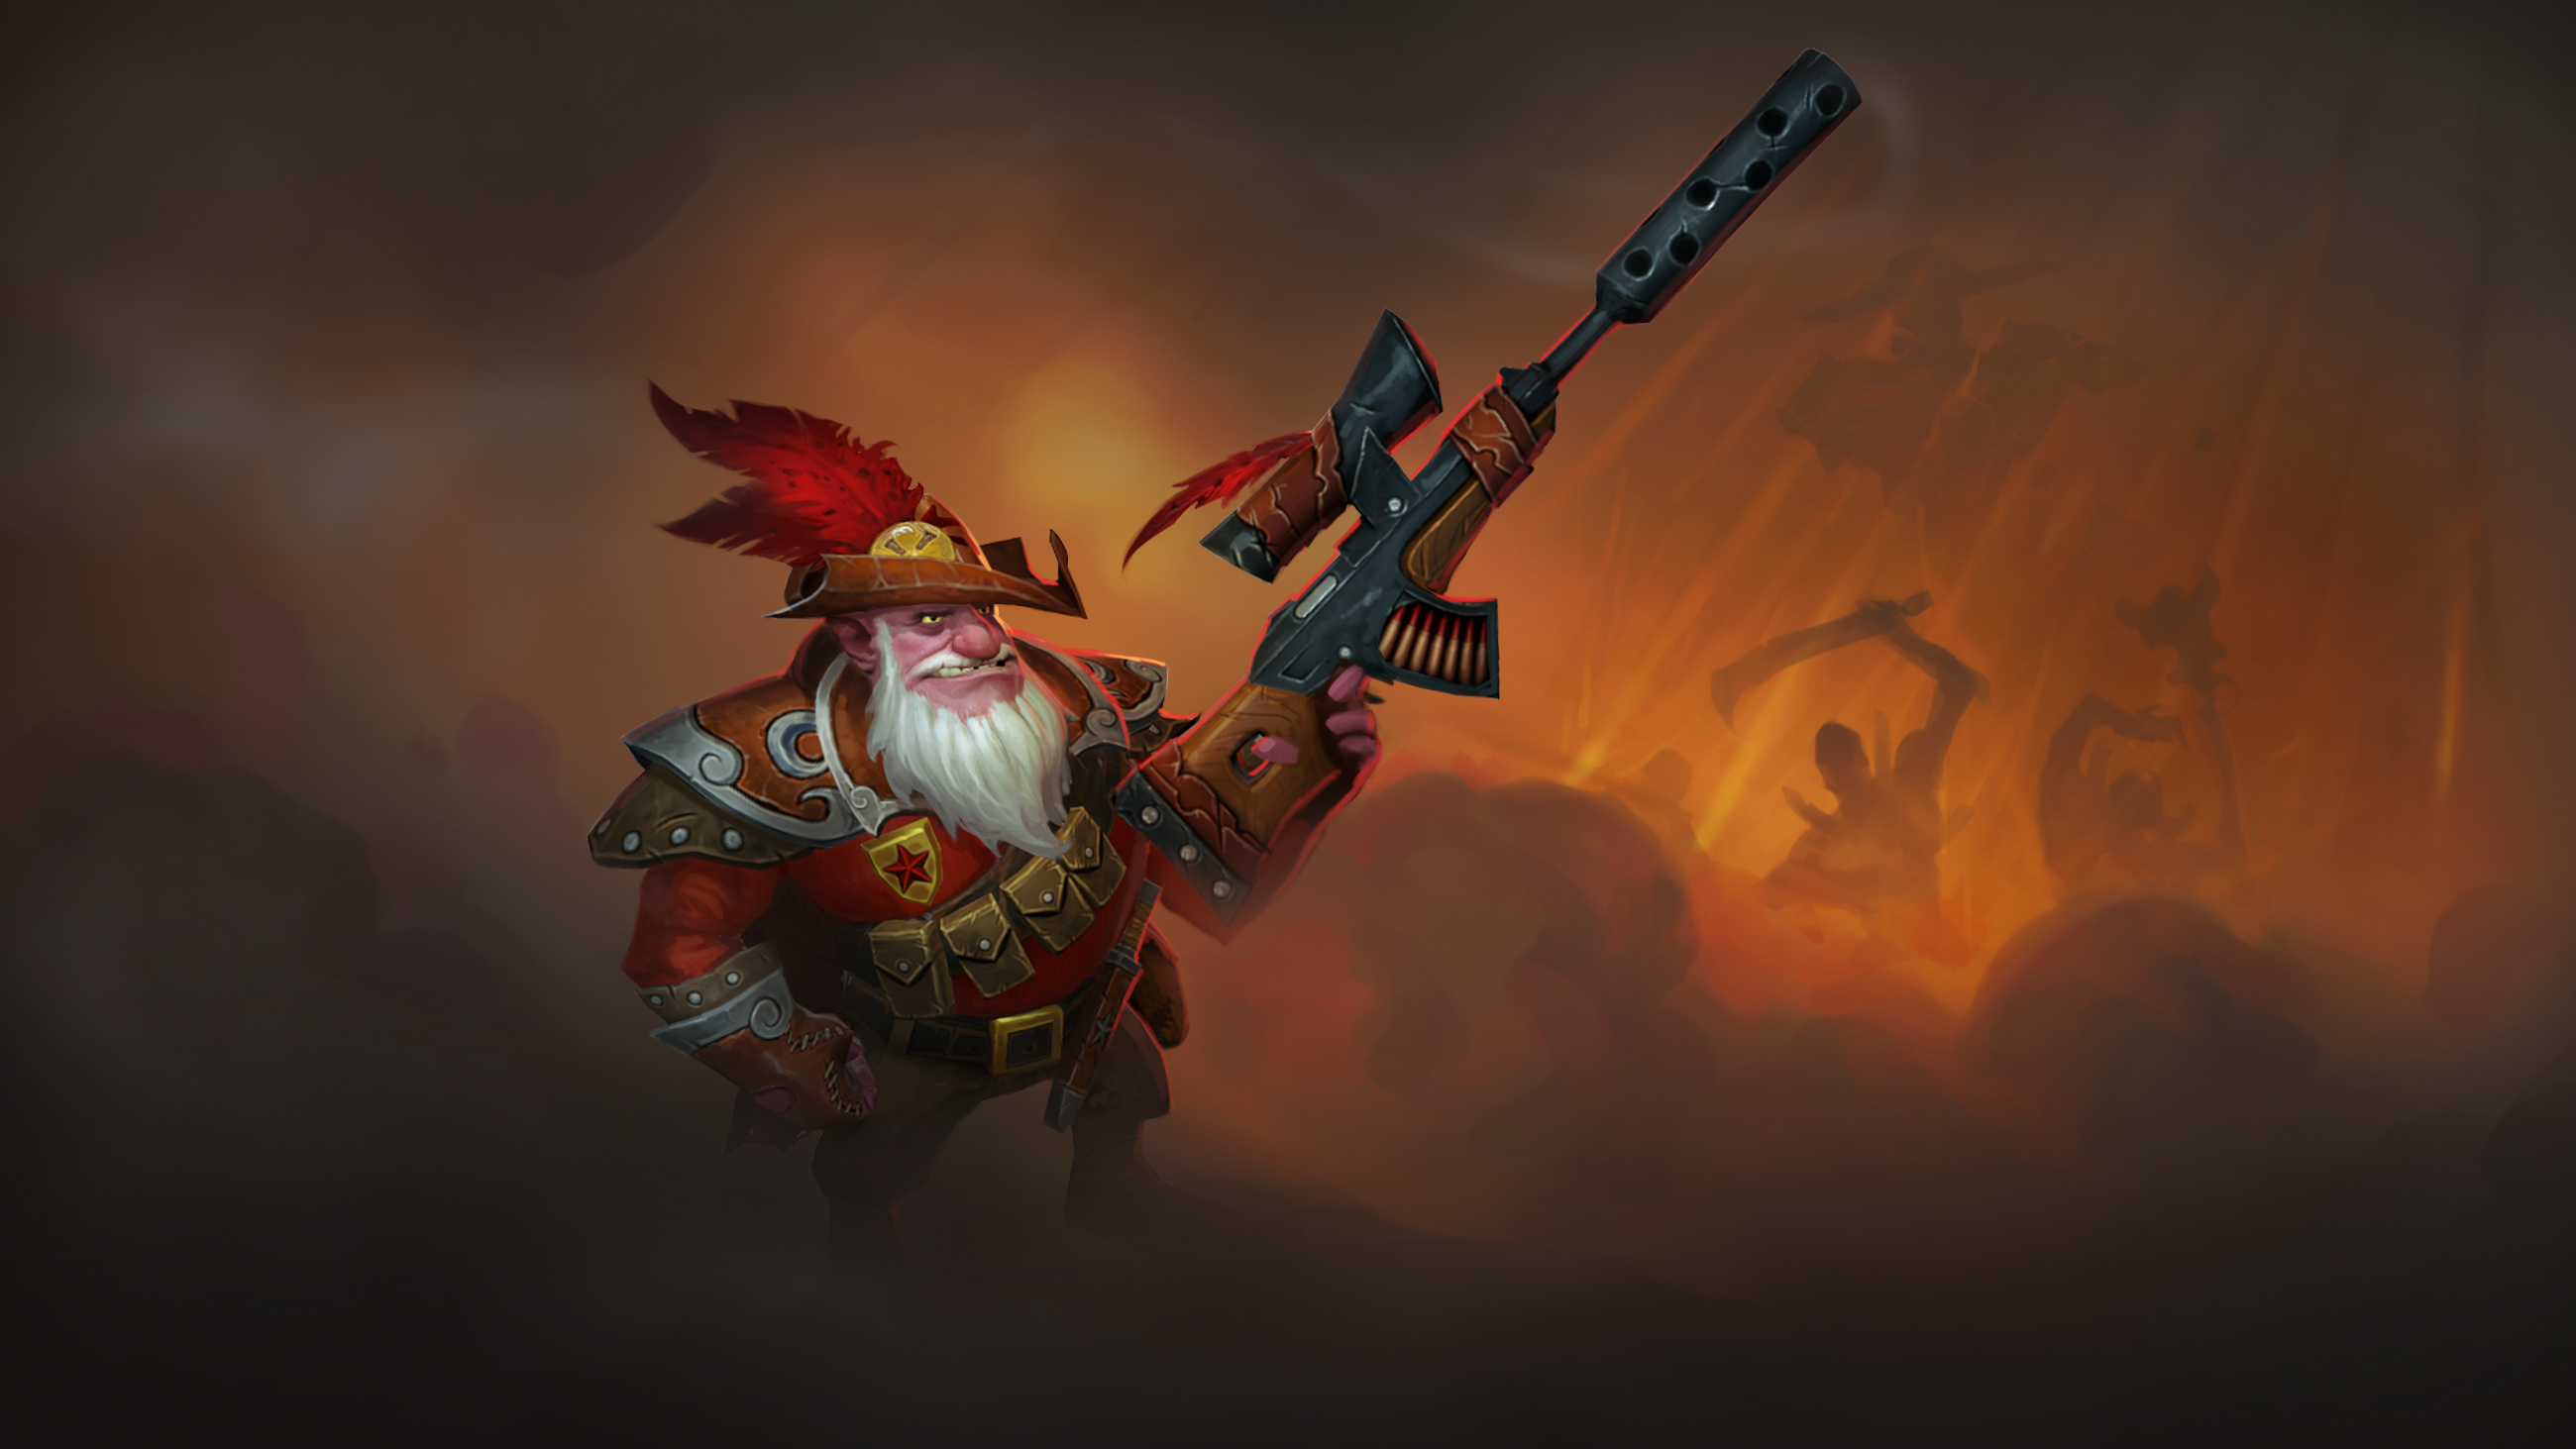 Dota 2 Sniper Wallpapers Full Hd Is Cool Wallpapers